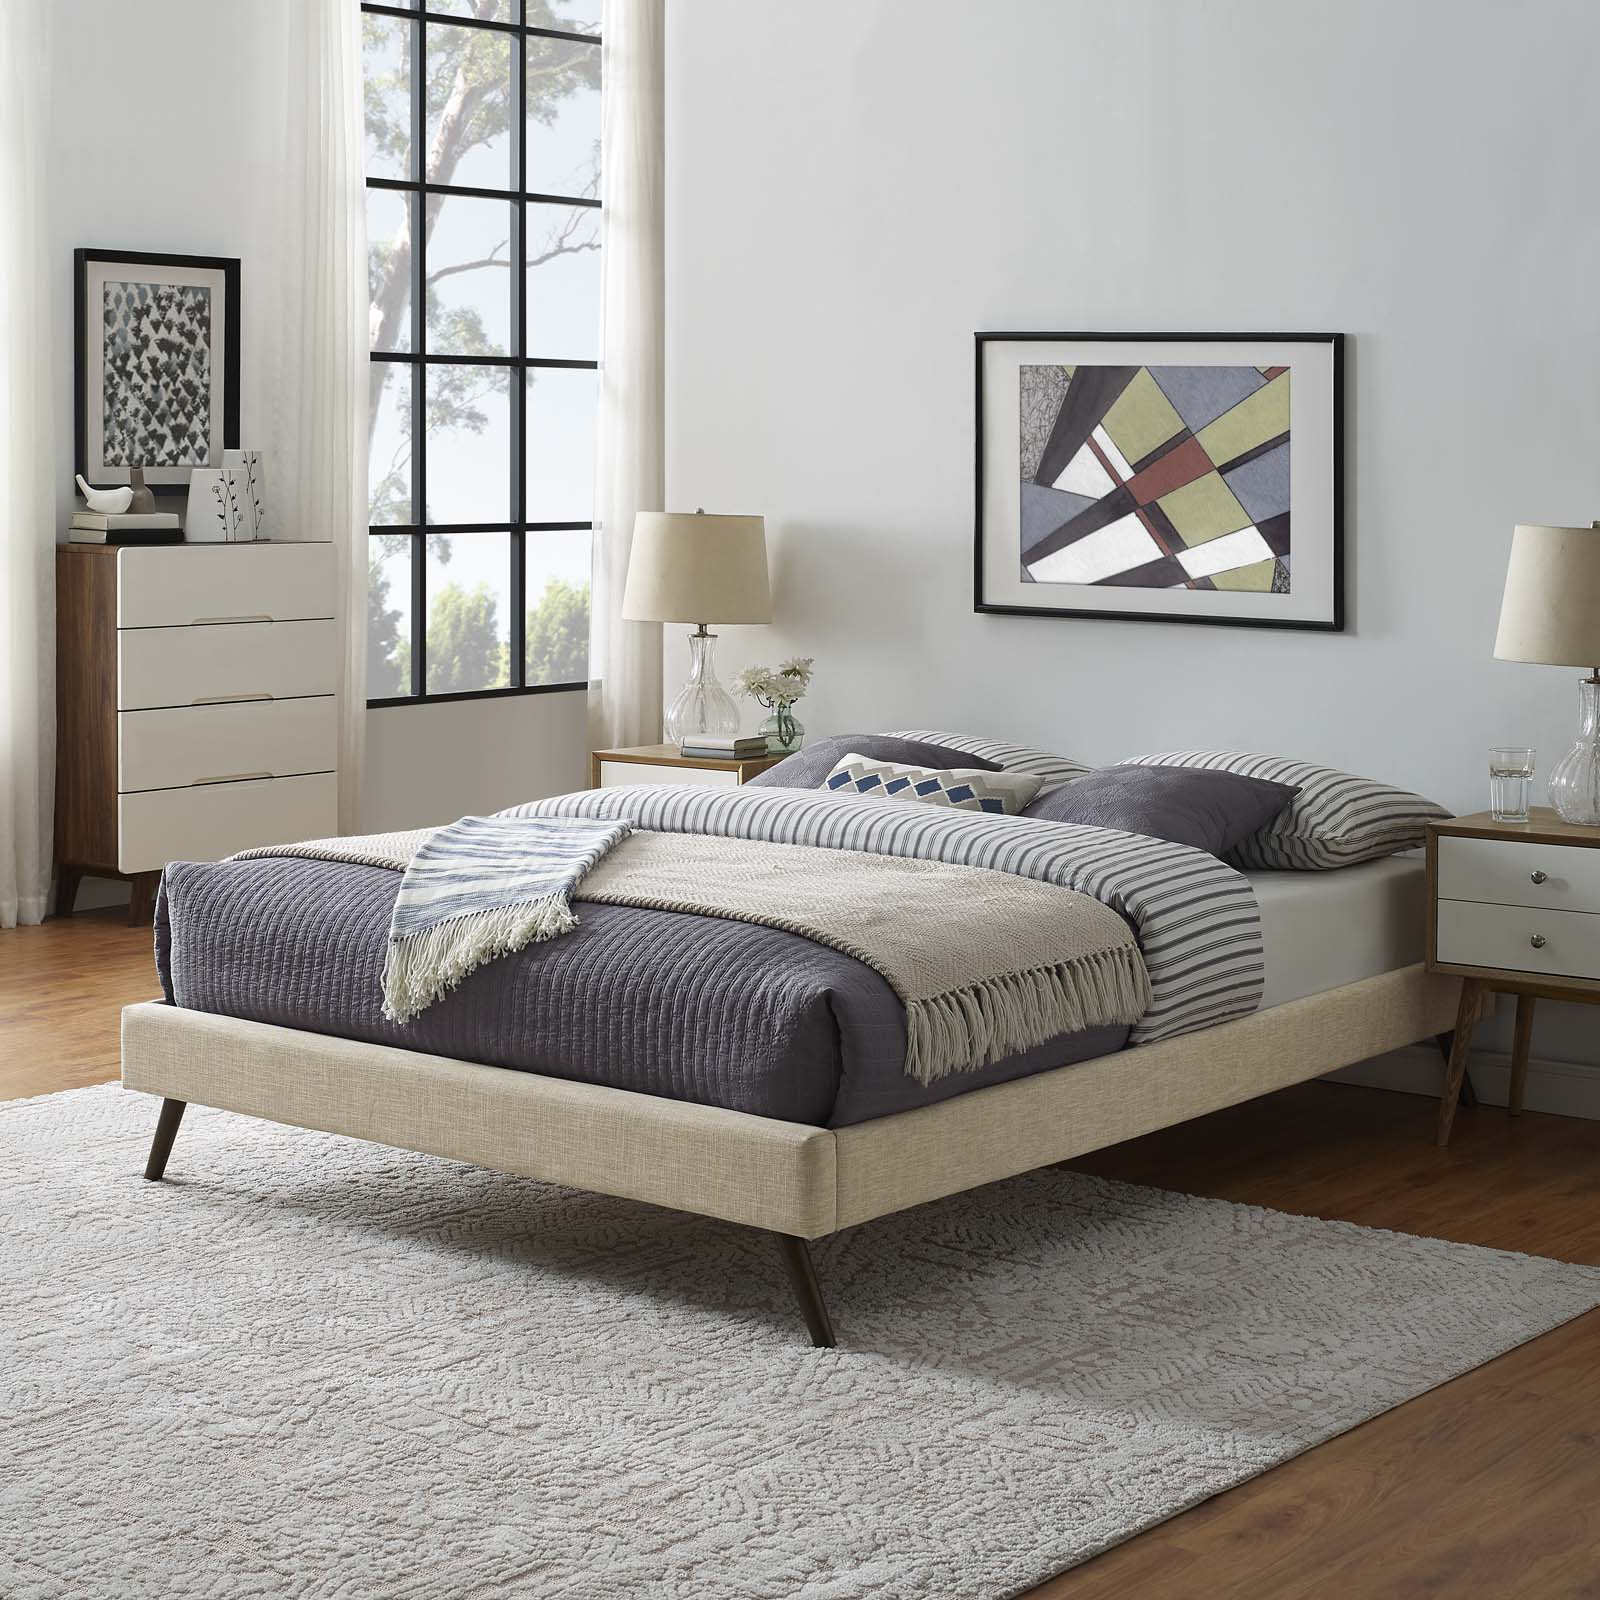 Modway Loryn Full Fabric Bed Frame with Round Splayed Legs in Beige